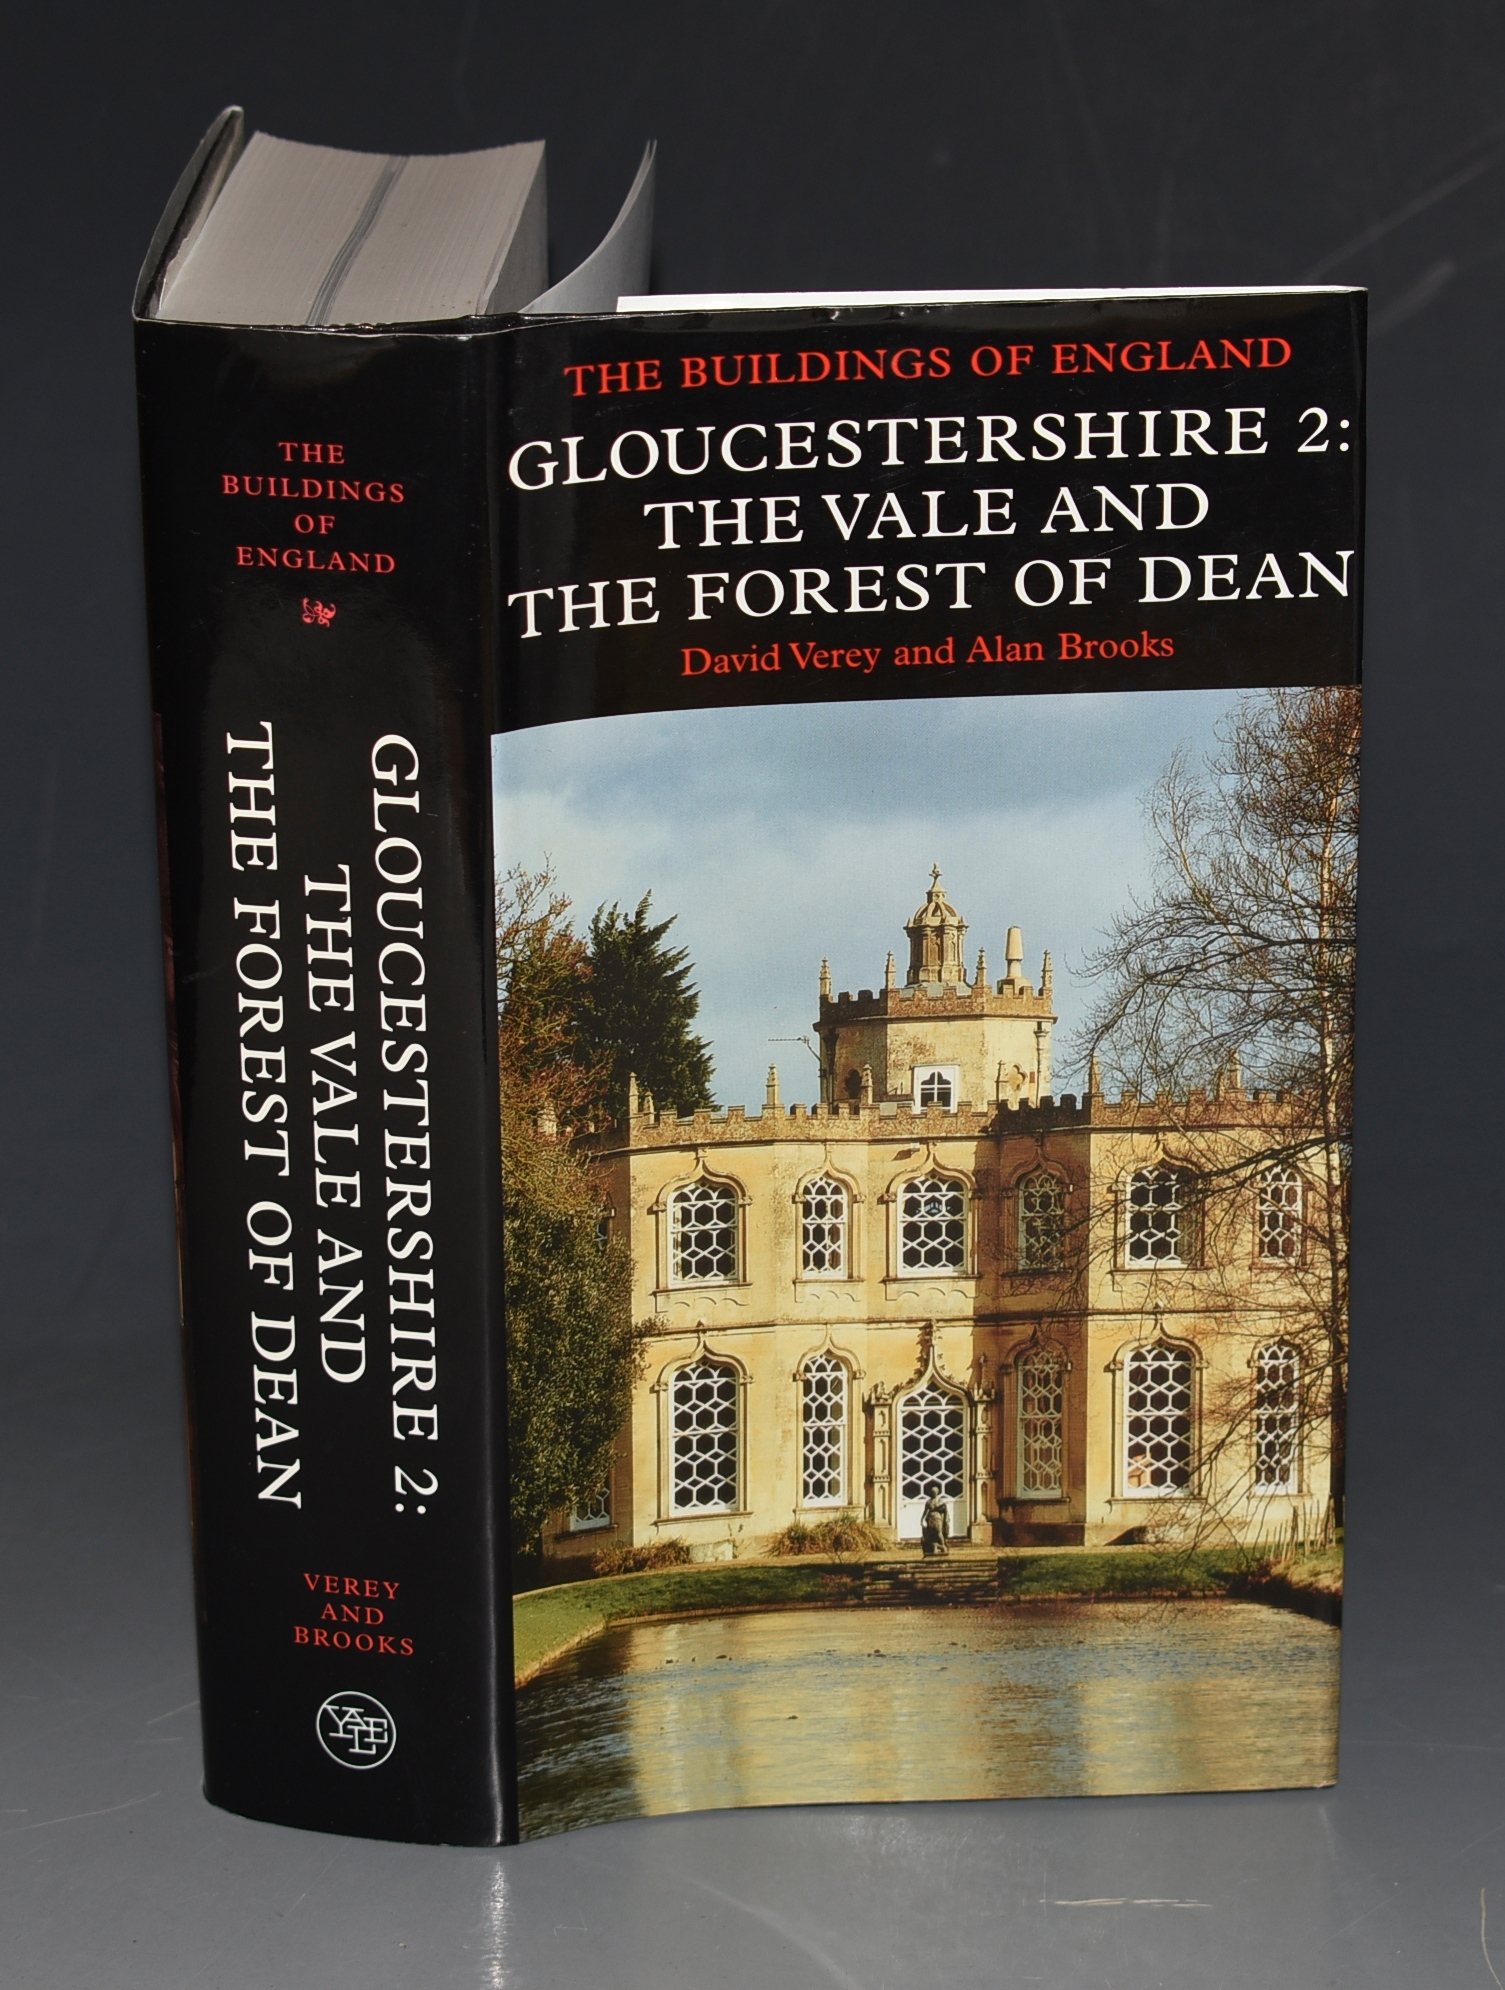 Image for Gloucestershire 2: The Vale and the Forest of Dean. The Buildings of England. By David Verey and Alan Brooks